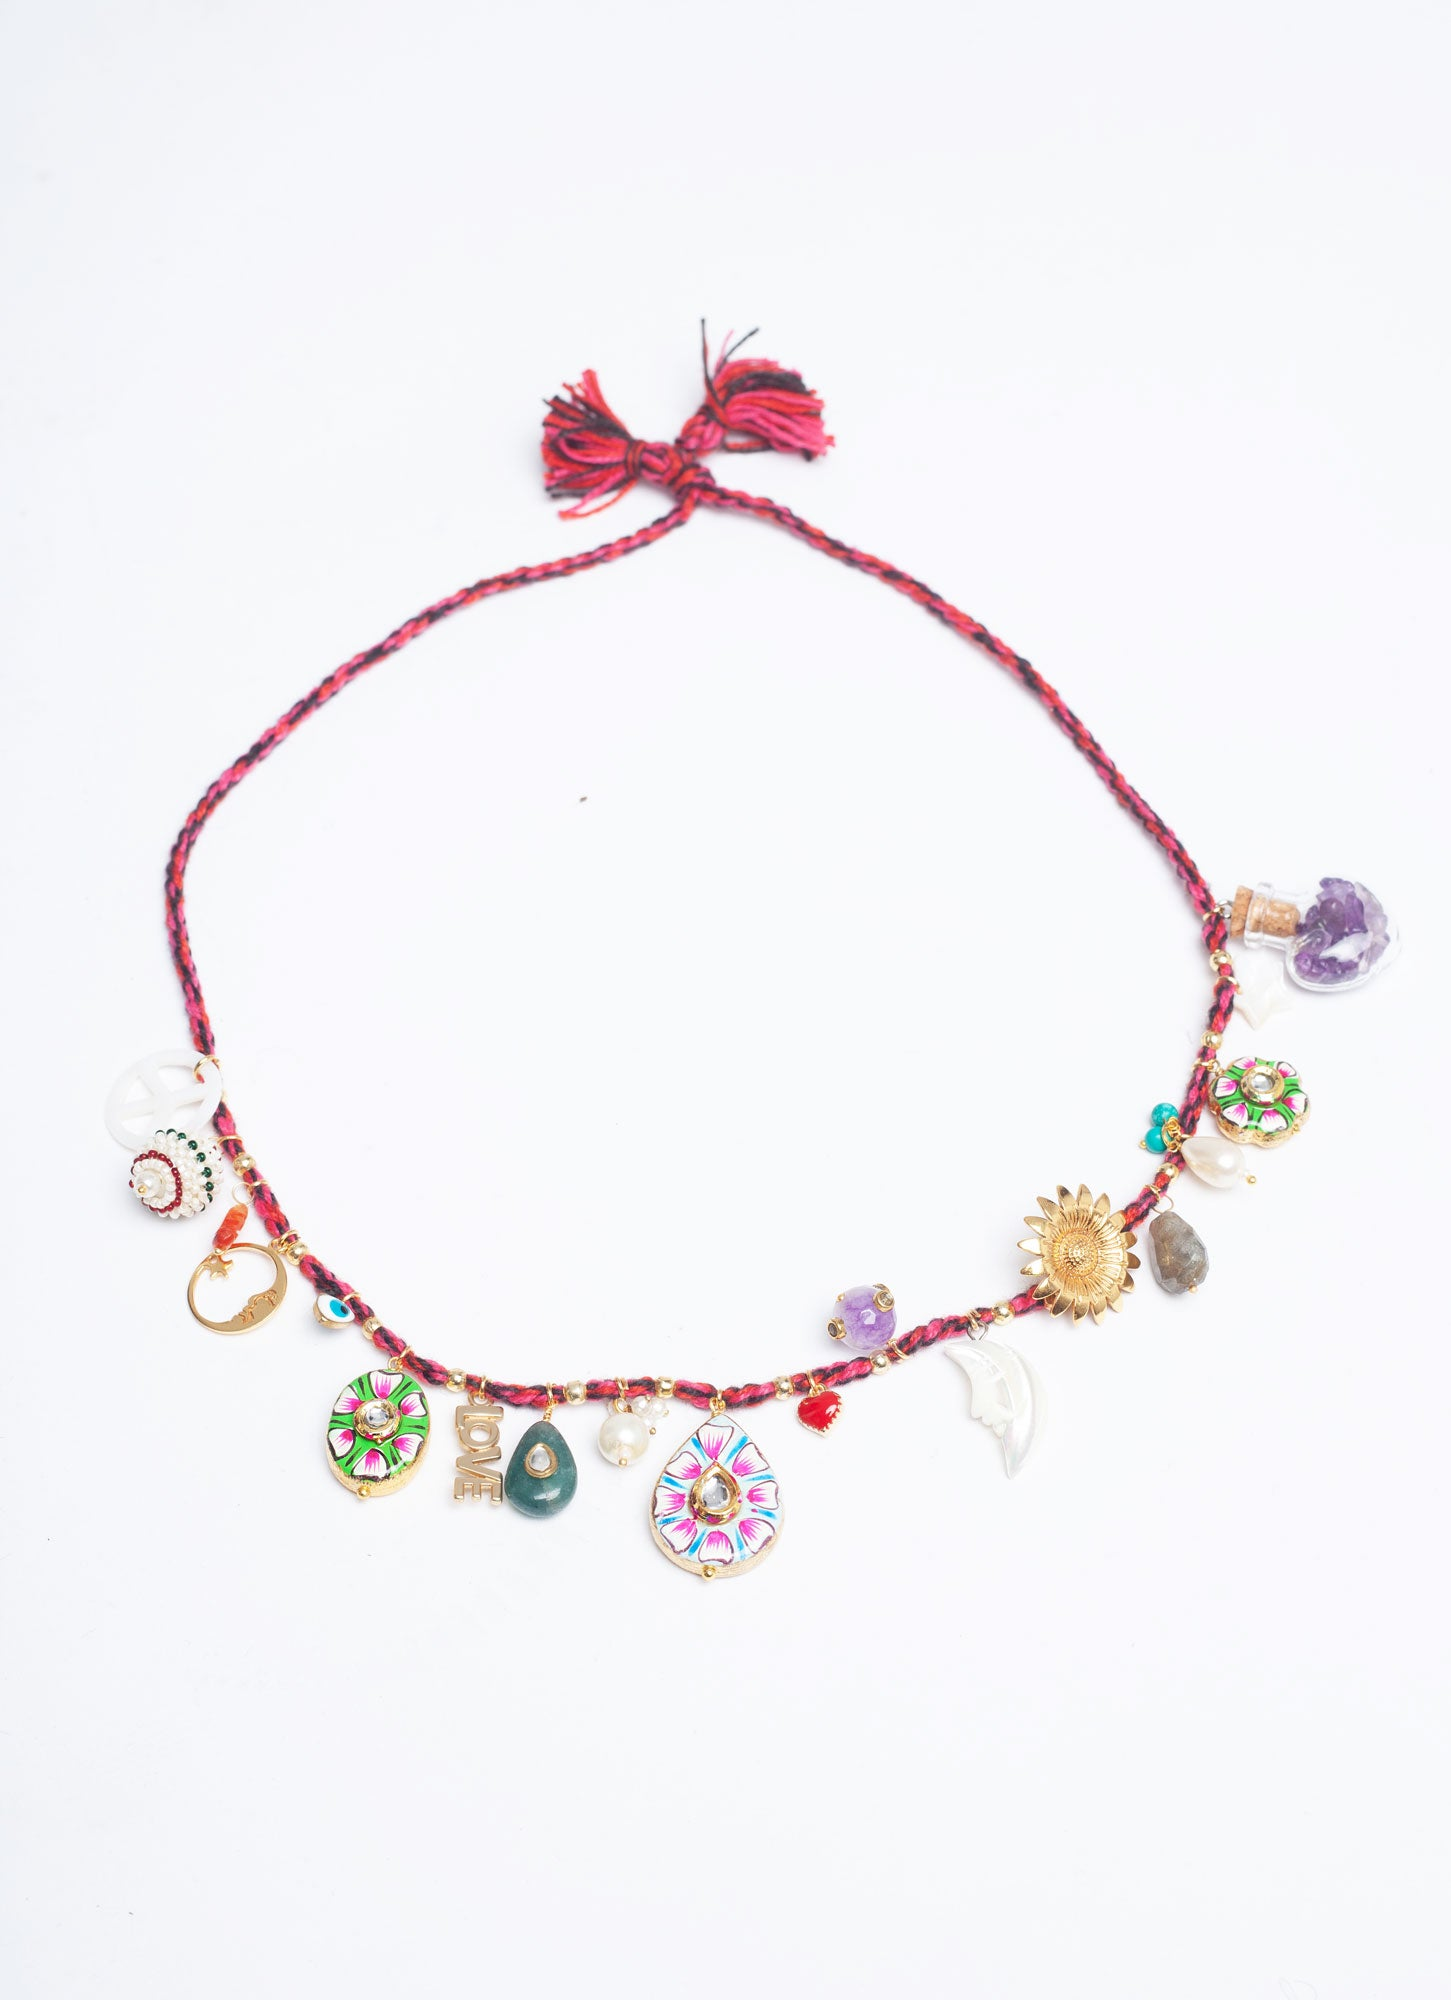 Rouge Cerise 'Surfeur' Necklace